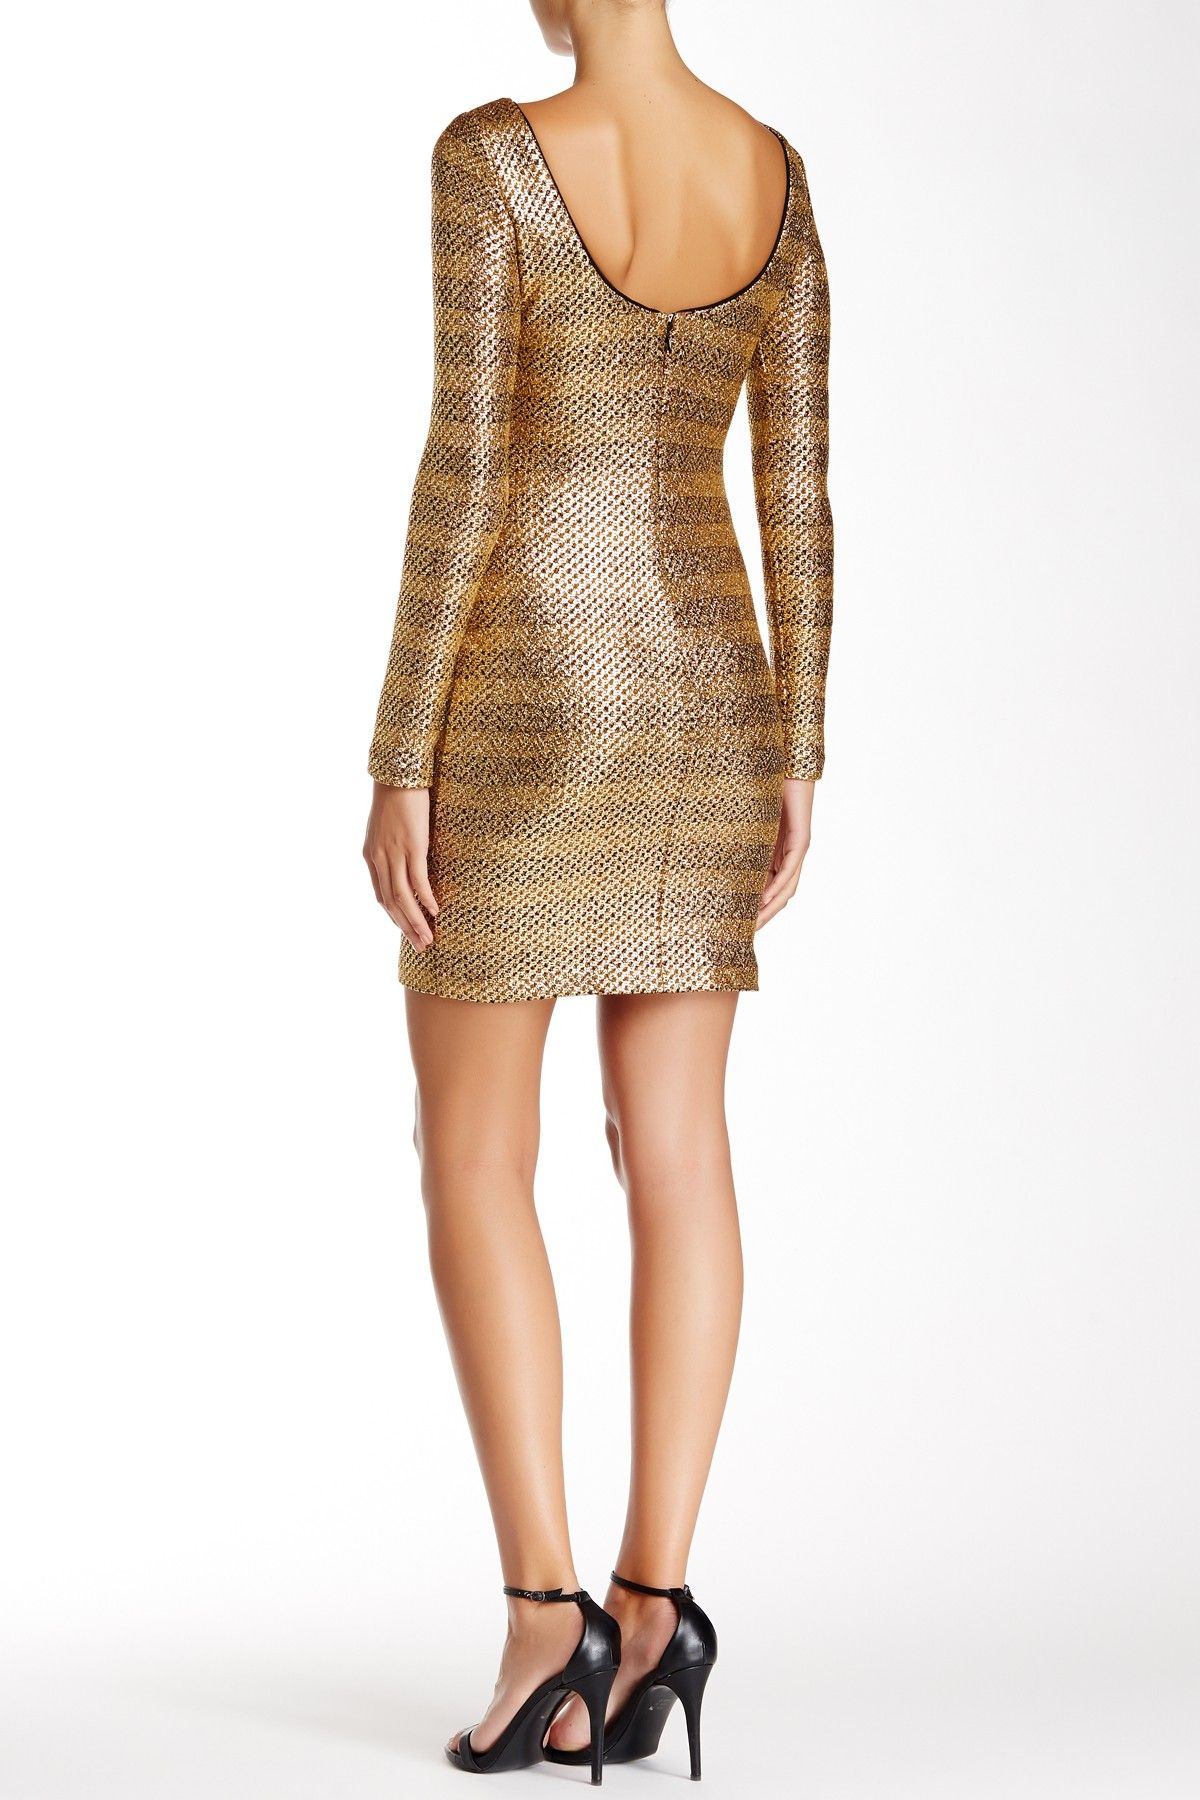 Belle by badgley mischka metallic textured long sleeve dress